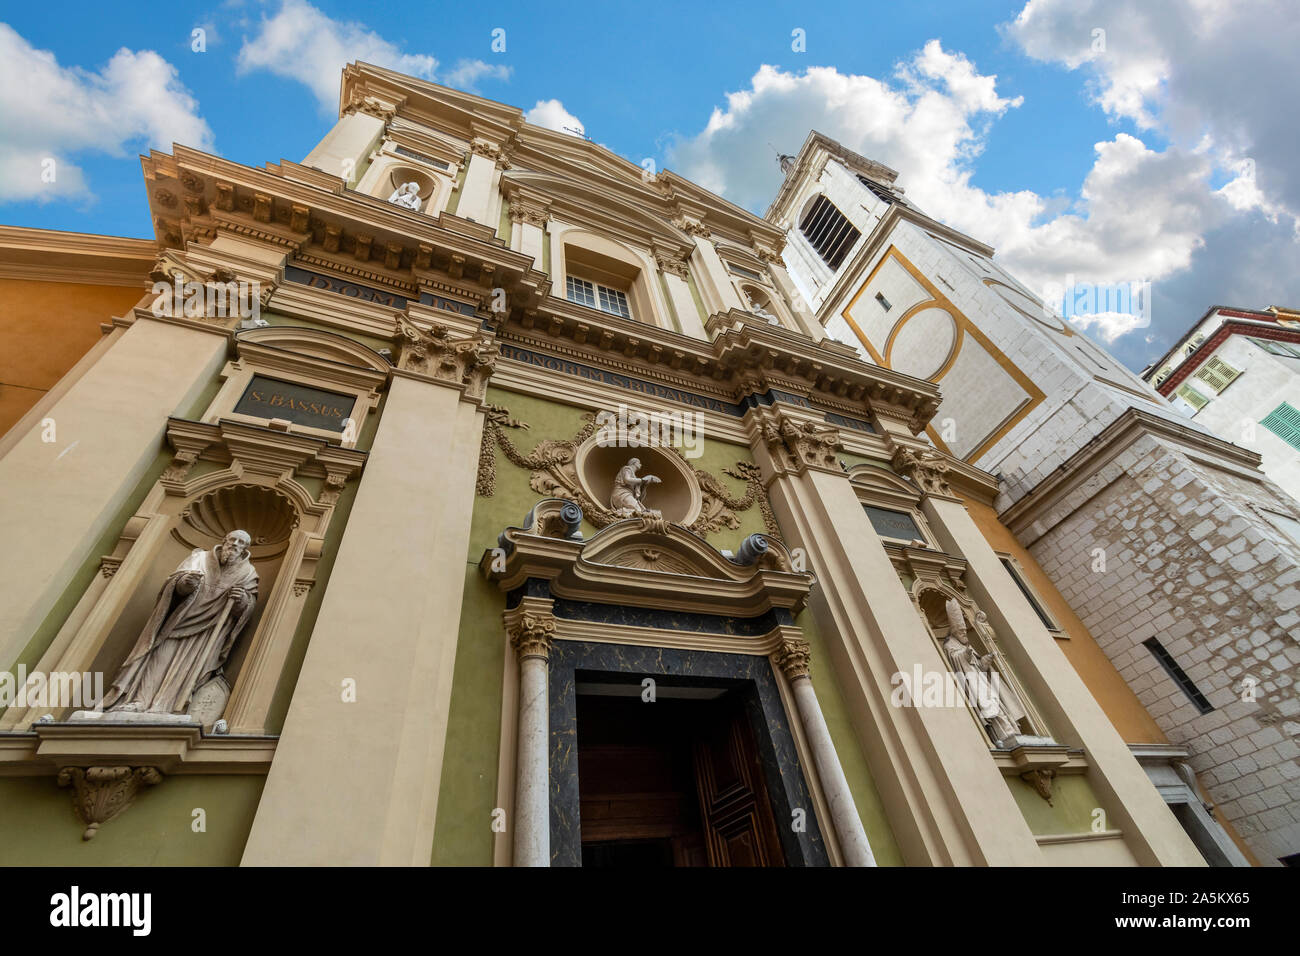 The facade of the Nice Cathedral or Sainte-Reparate de Nice in the Old Town historical center of Nice, France, on the French Riviera. Stock Photo